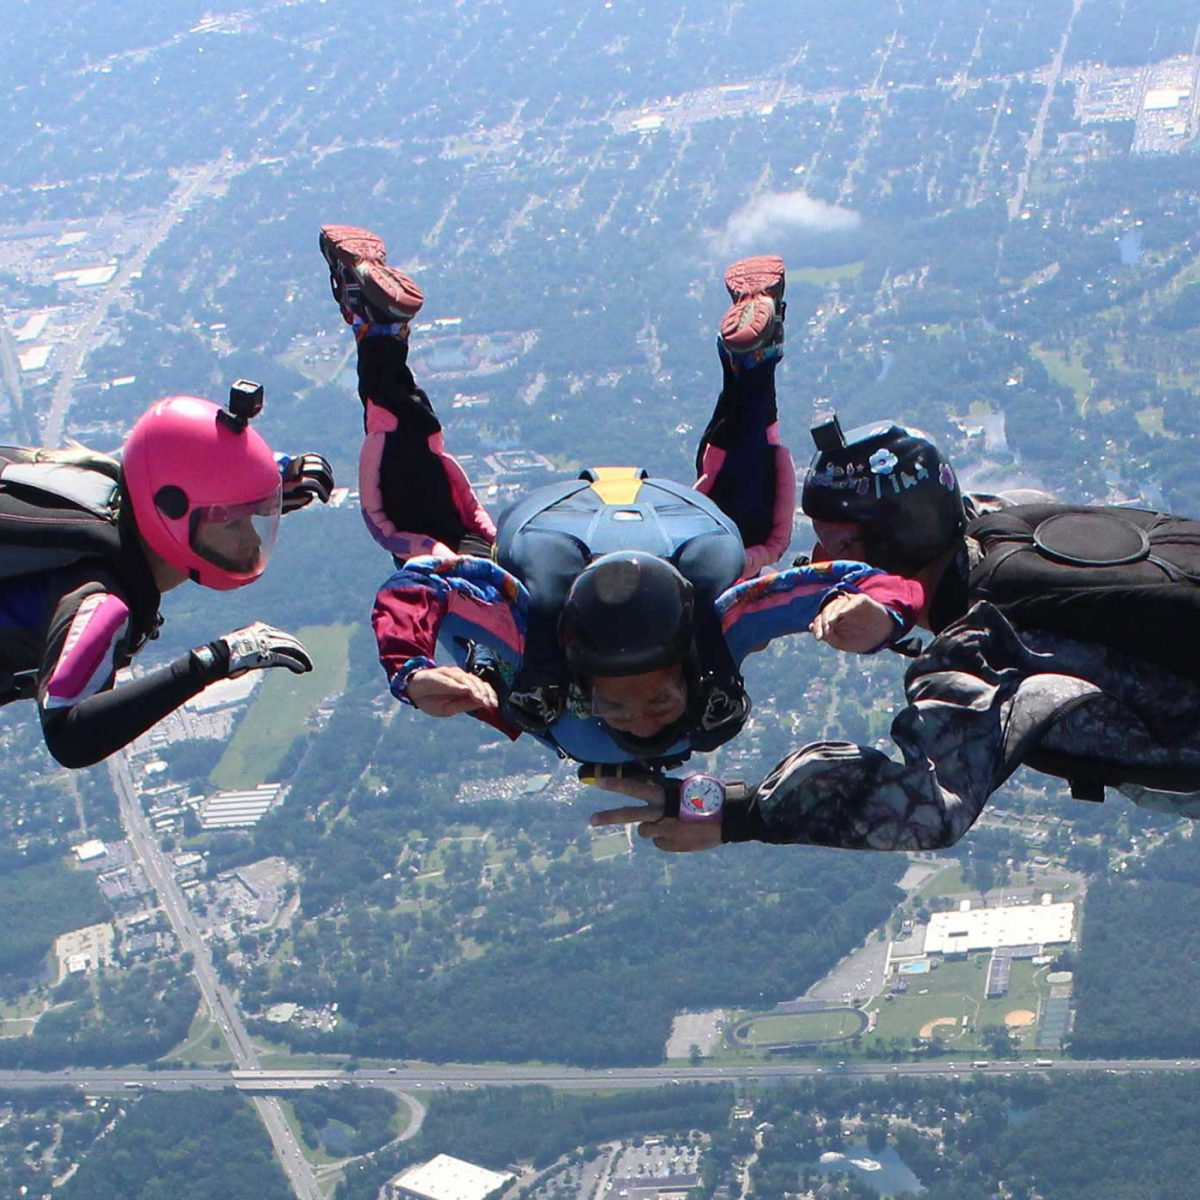 female learns to skydive with 2 instructors by her side